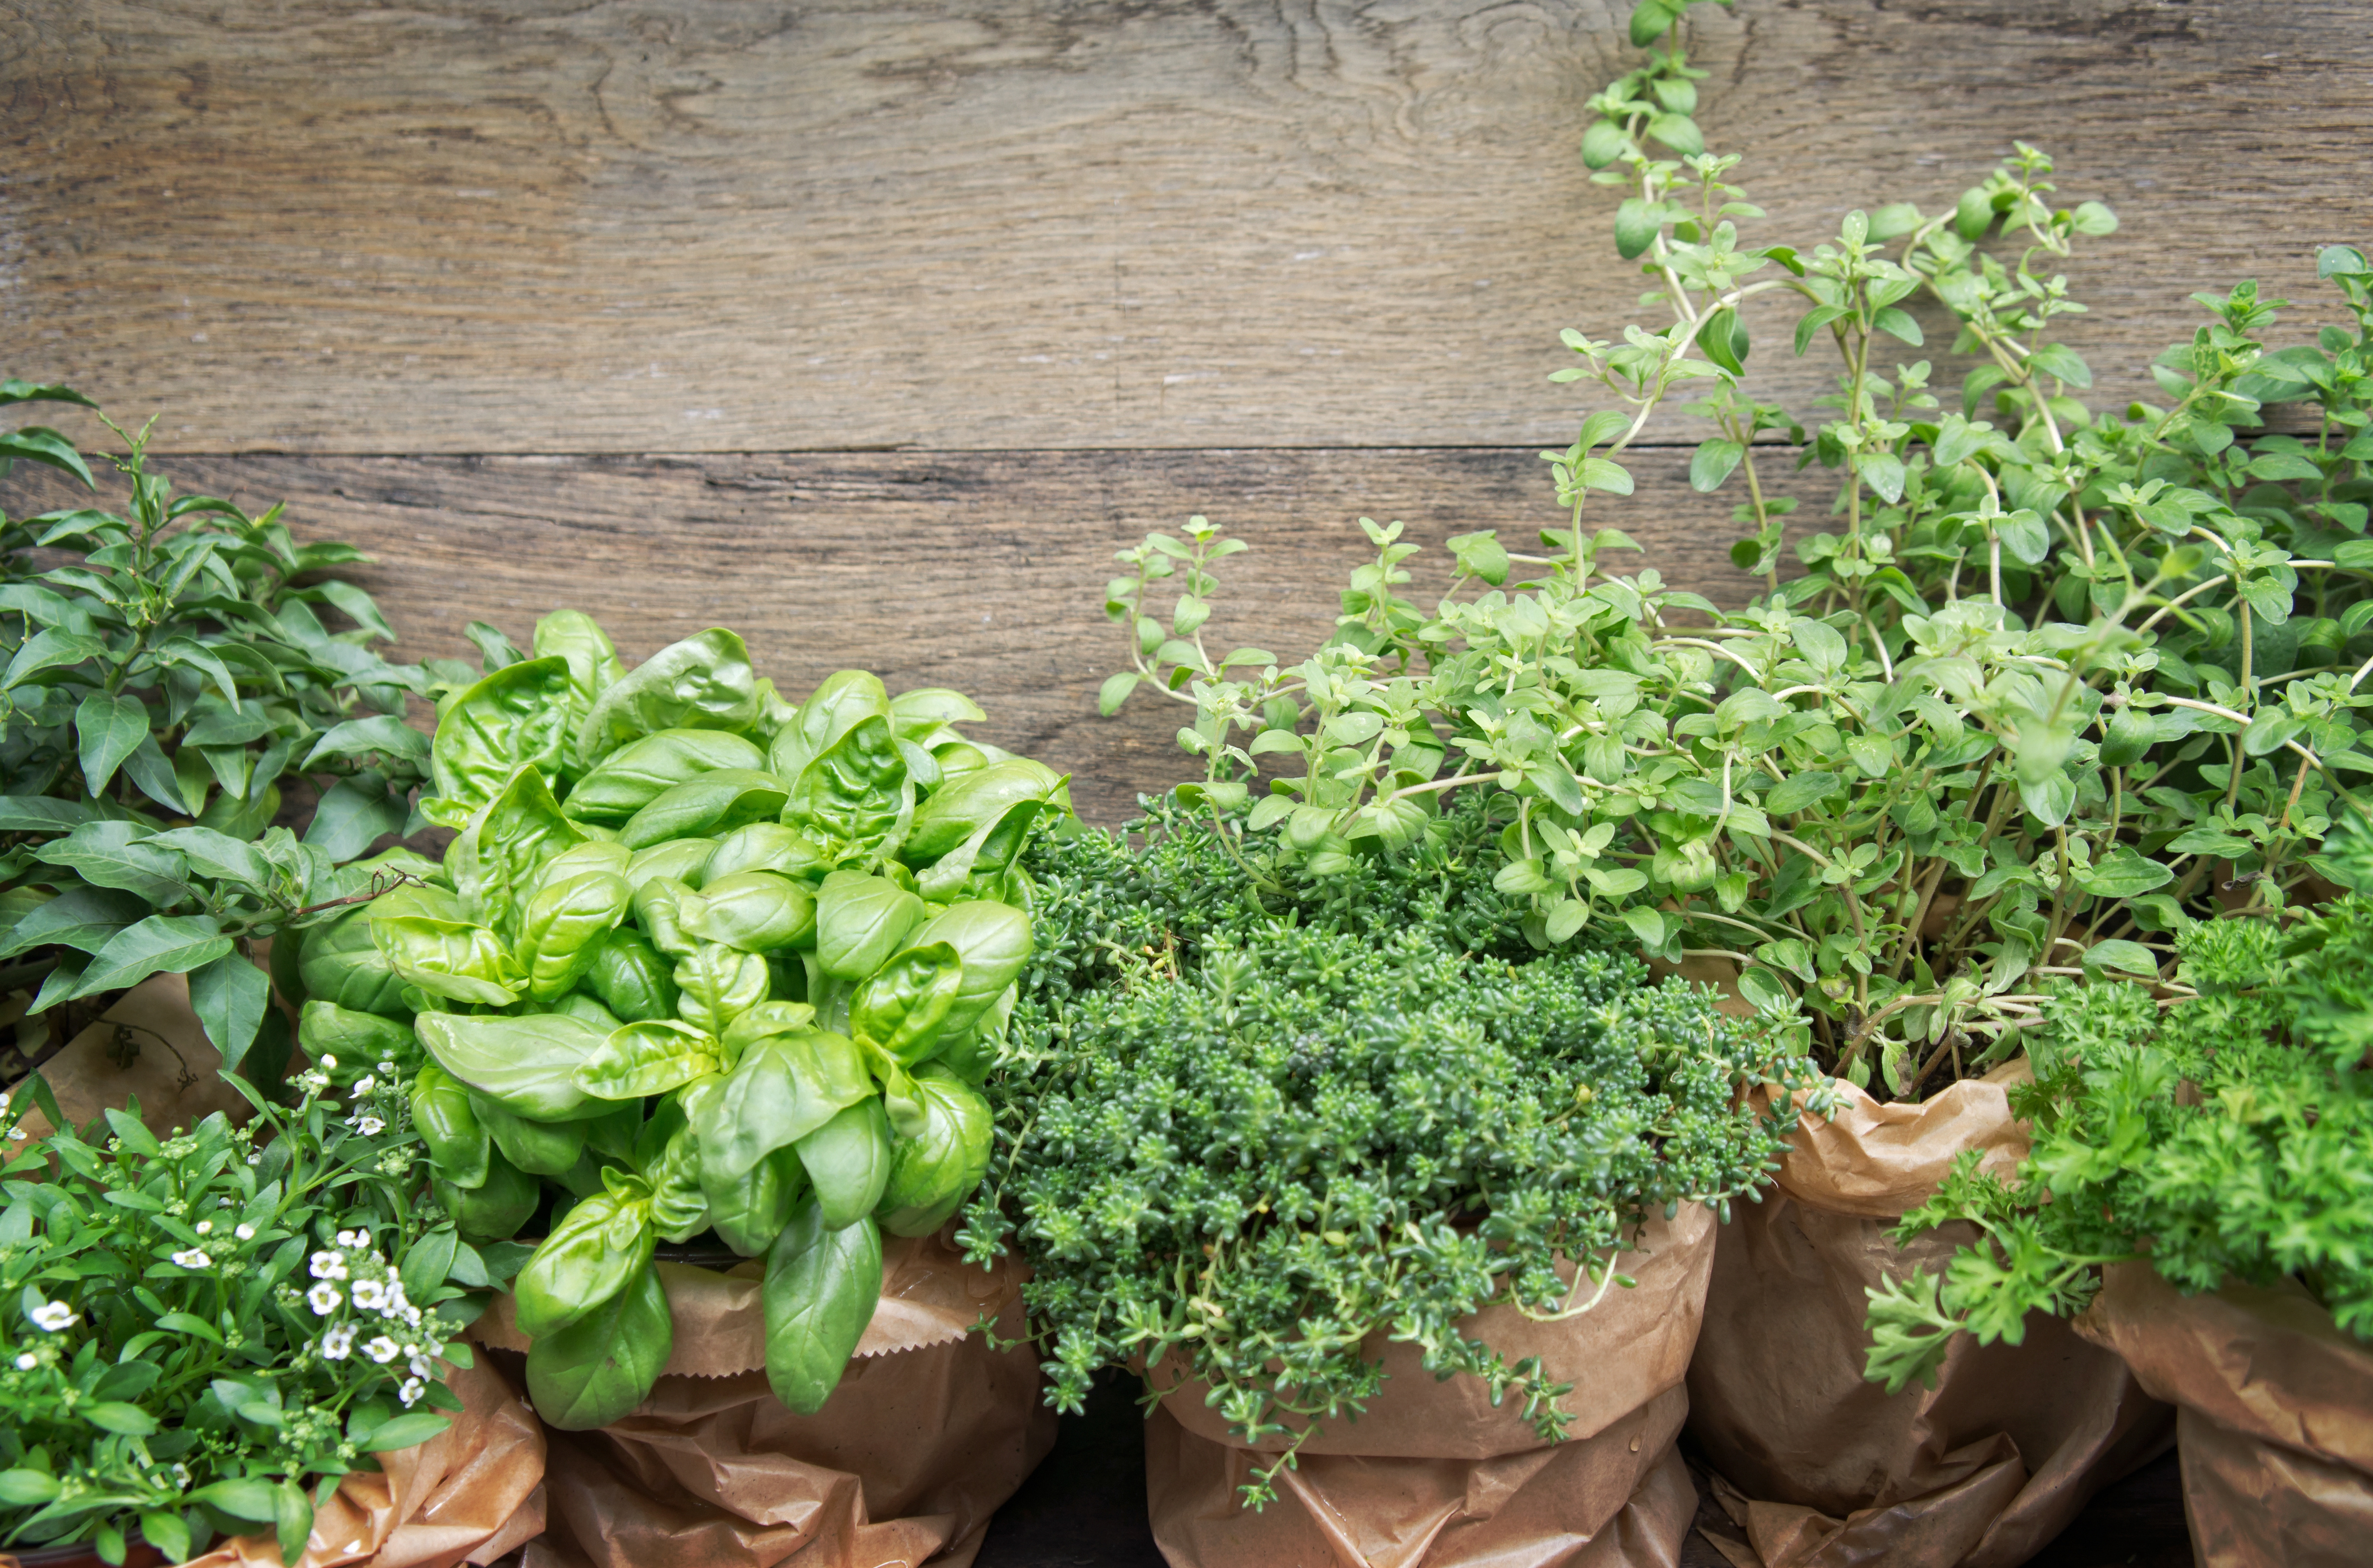 GETTING STARTED WITH HERBS